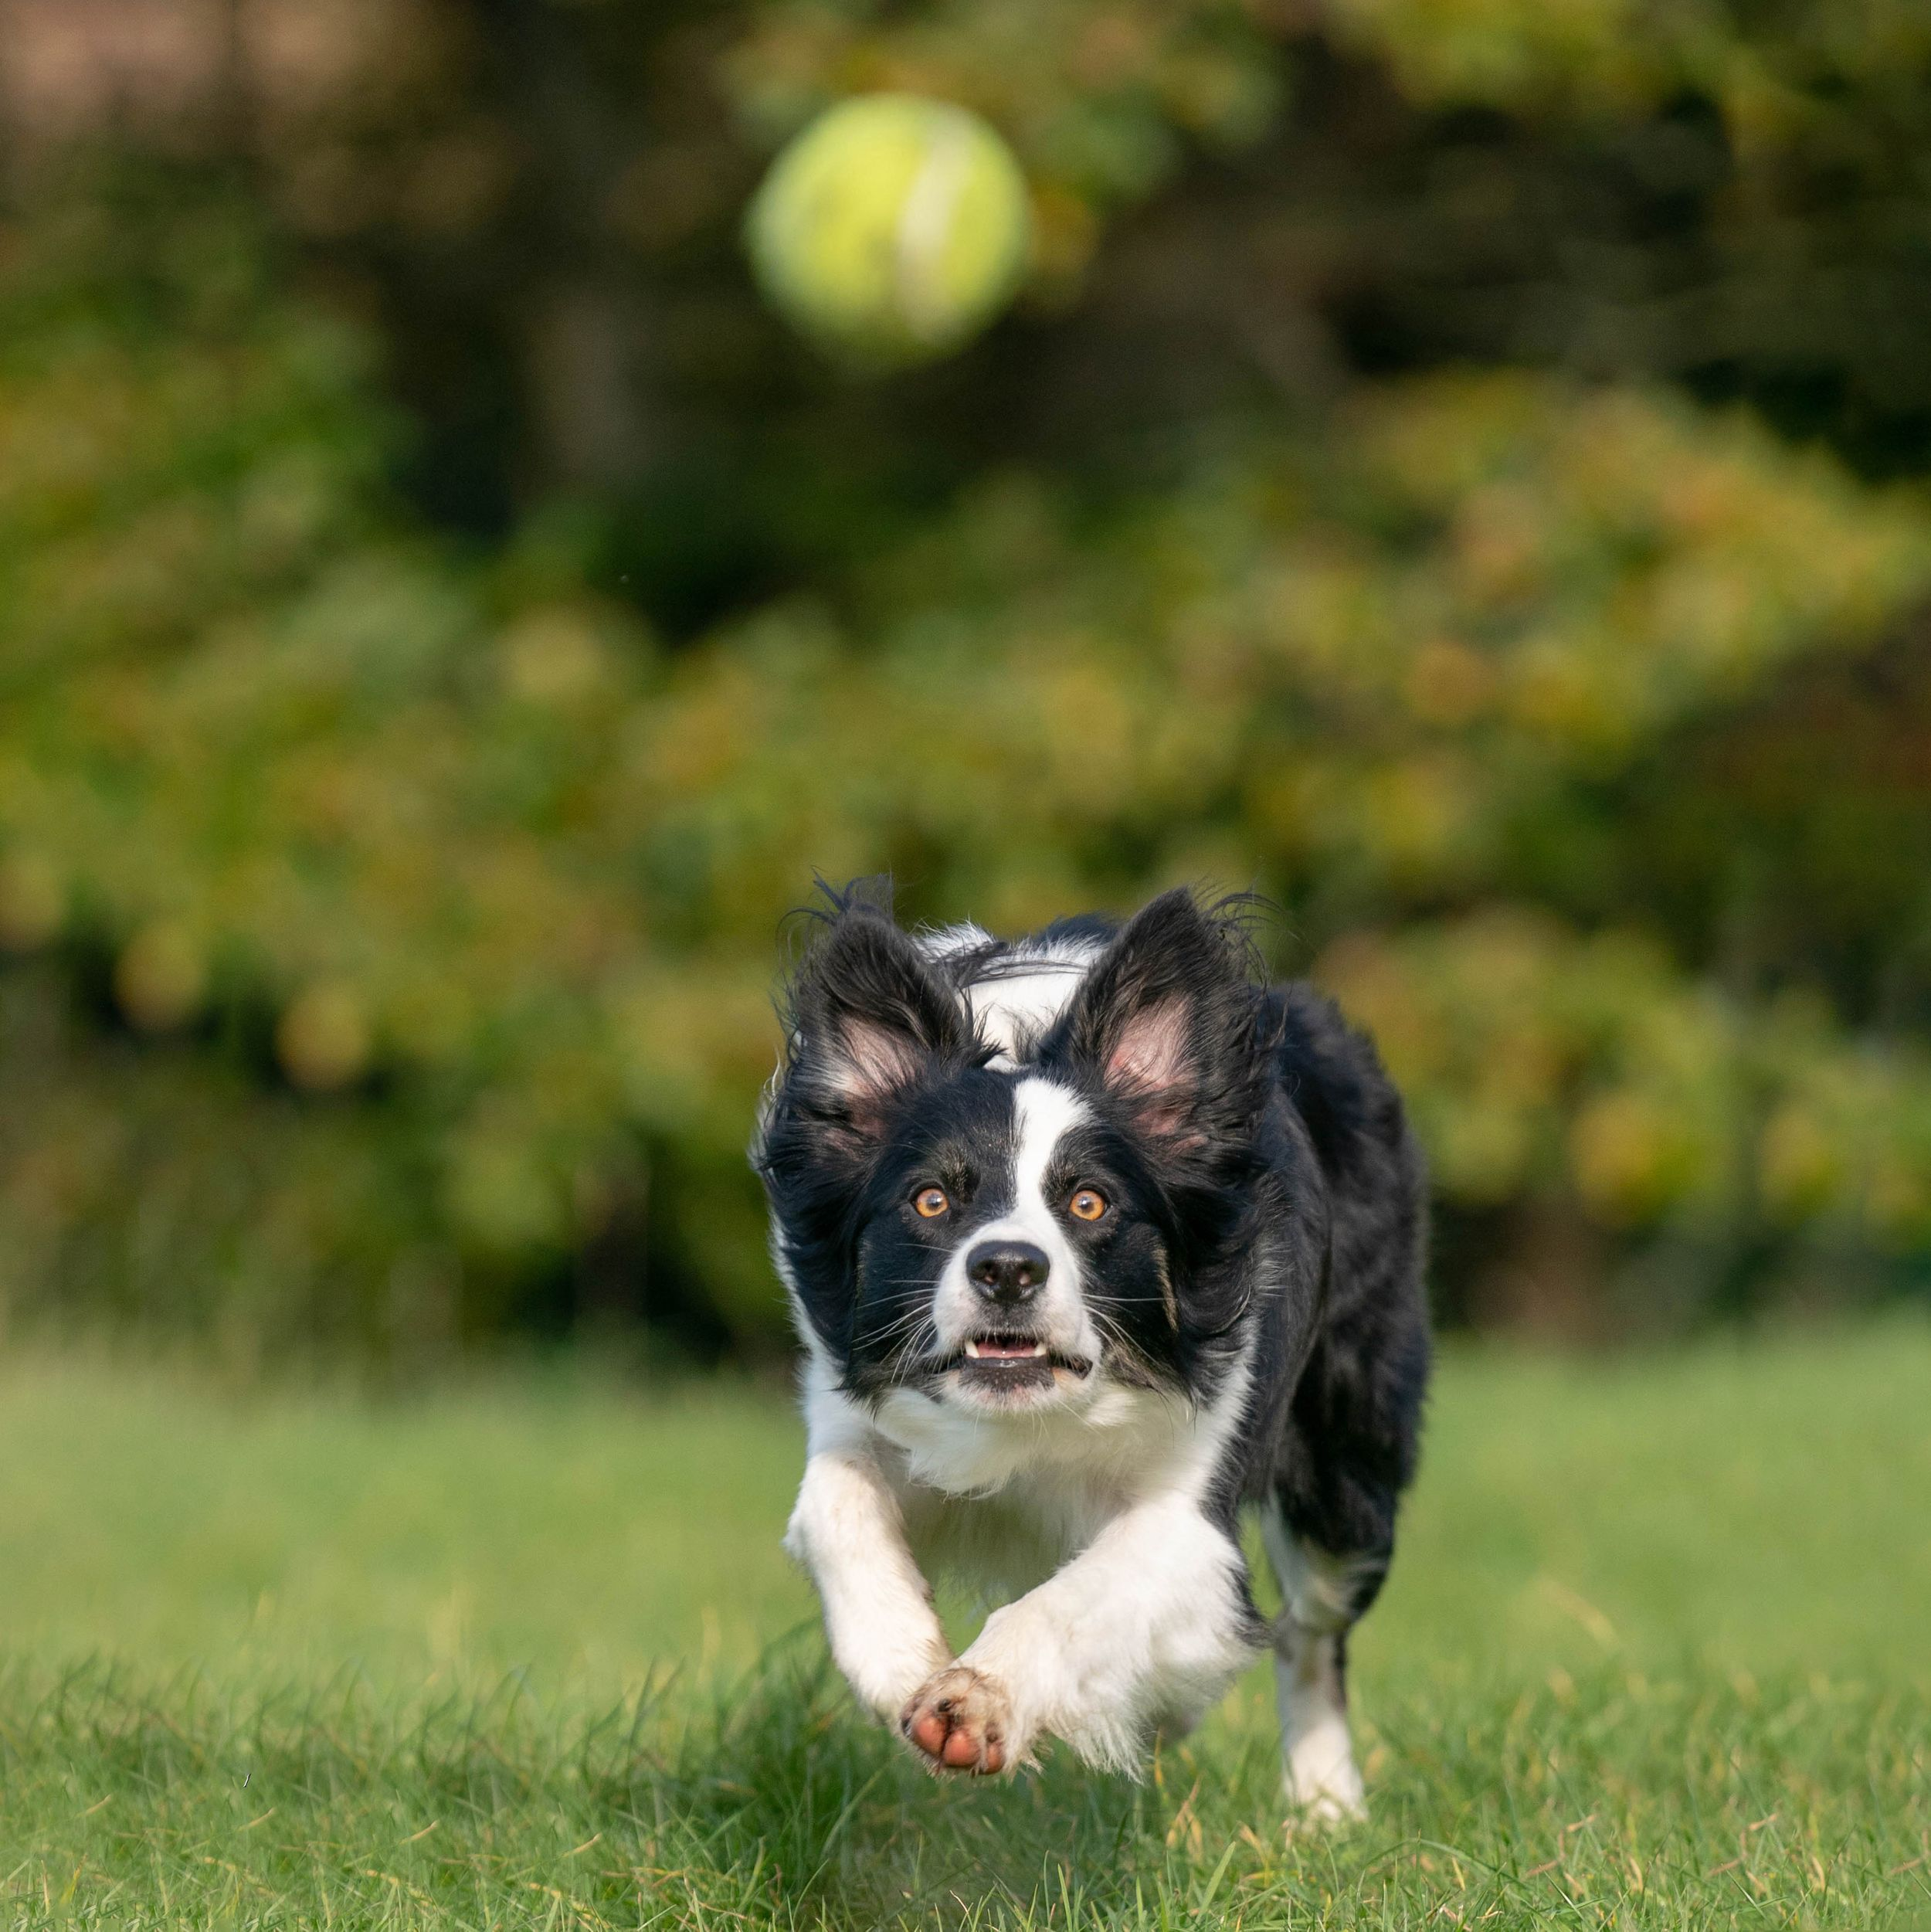 collie dog running towards camera chasing ball